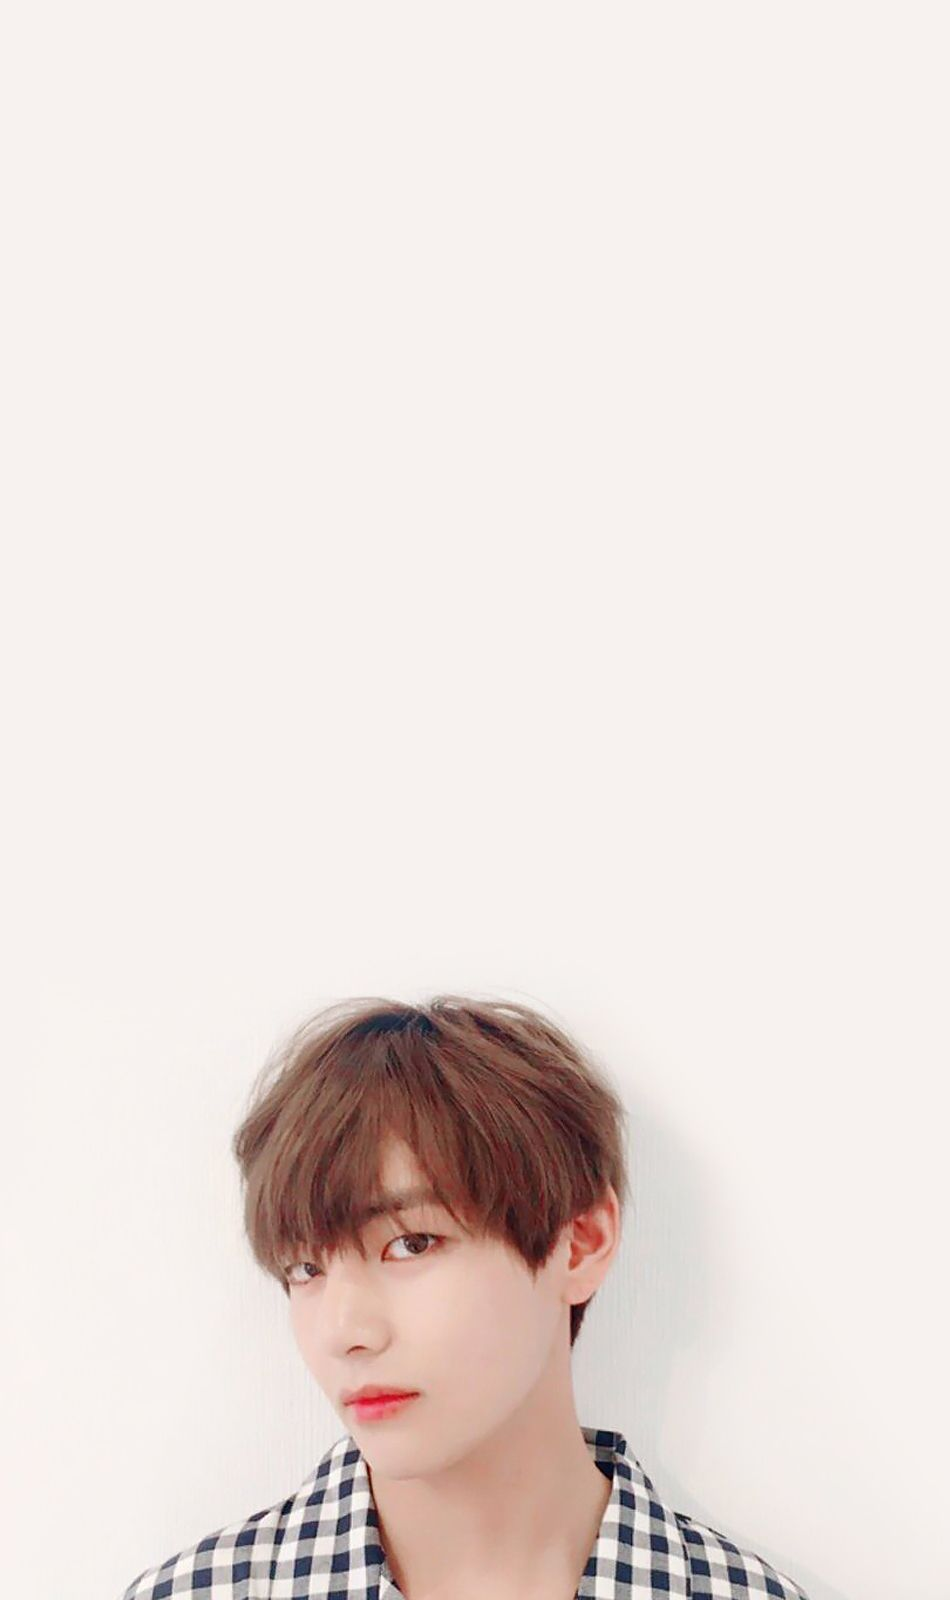 Related Image Taehyung Bts V Pictures Bts Wallpaper